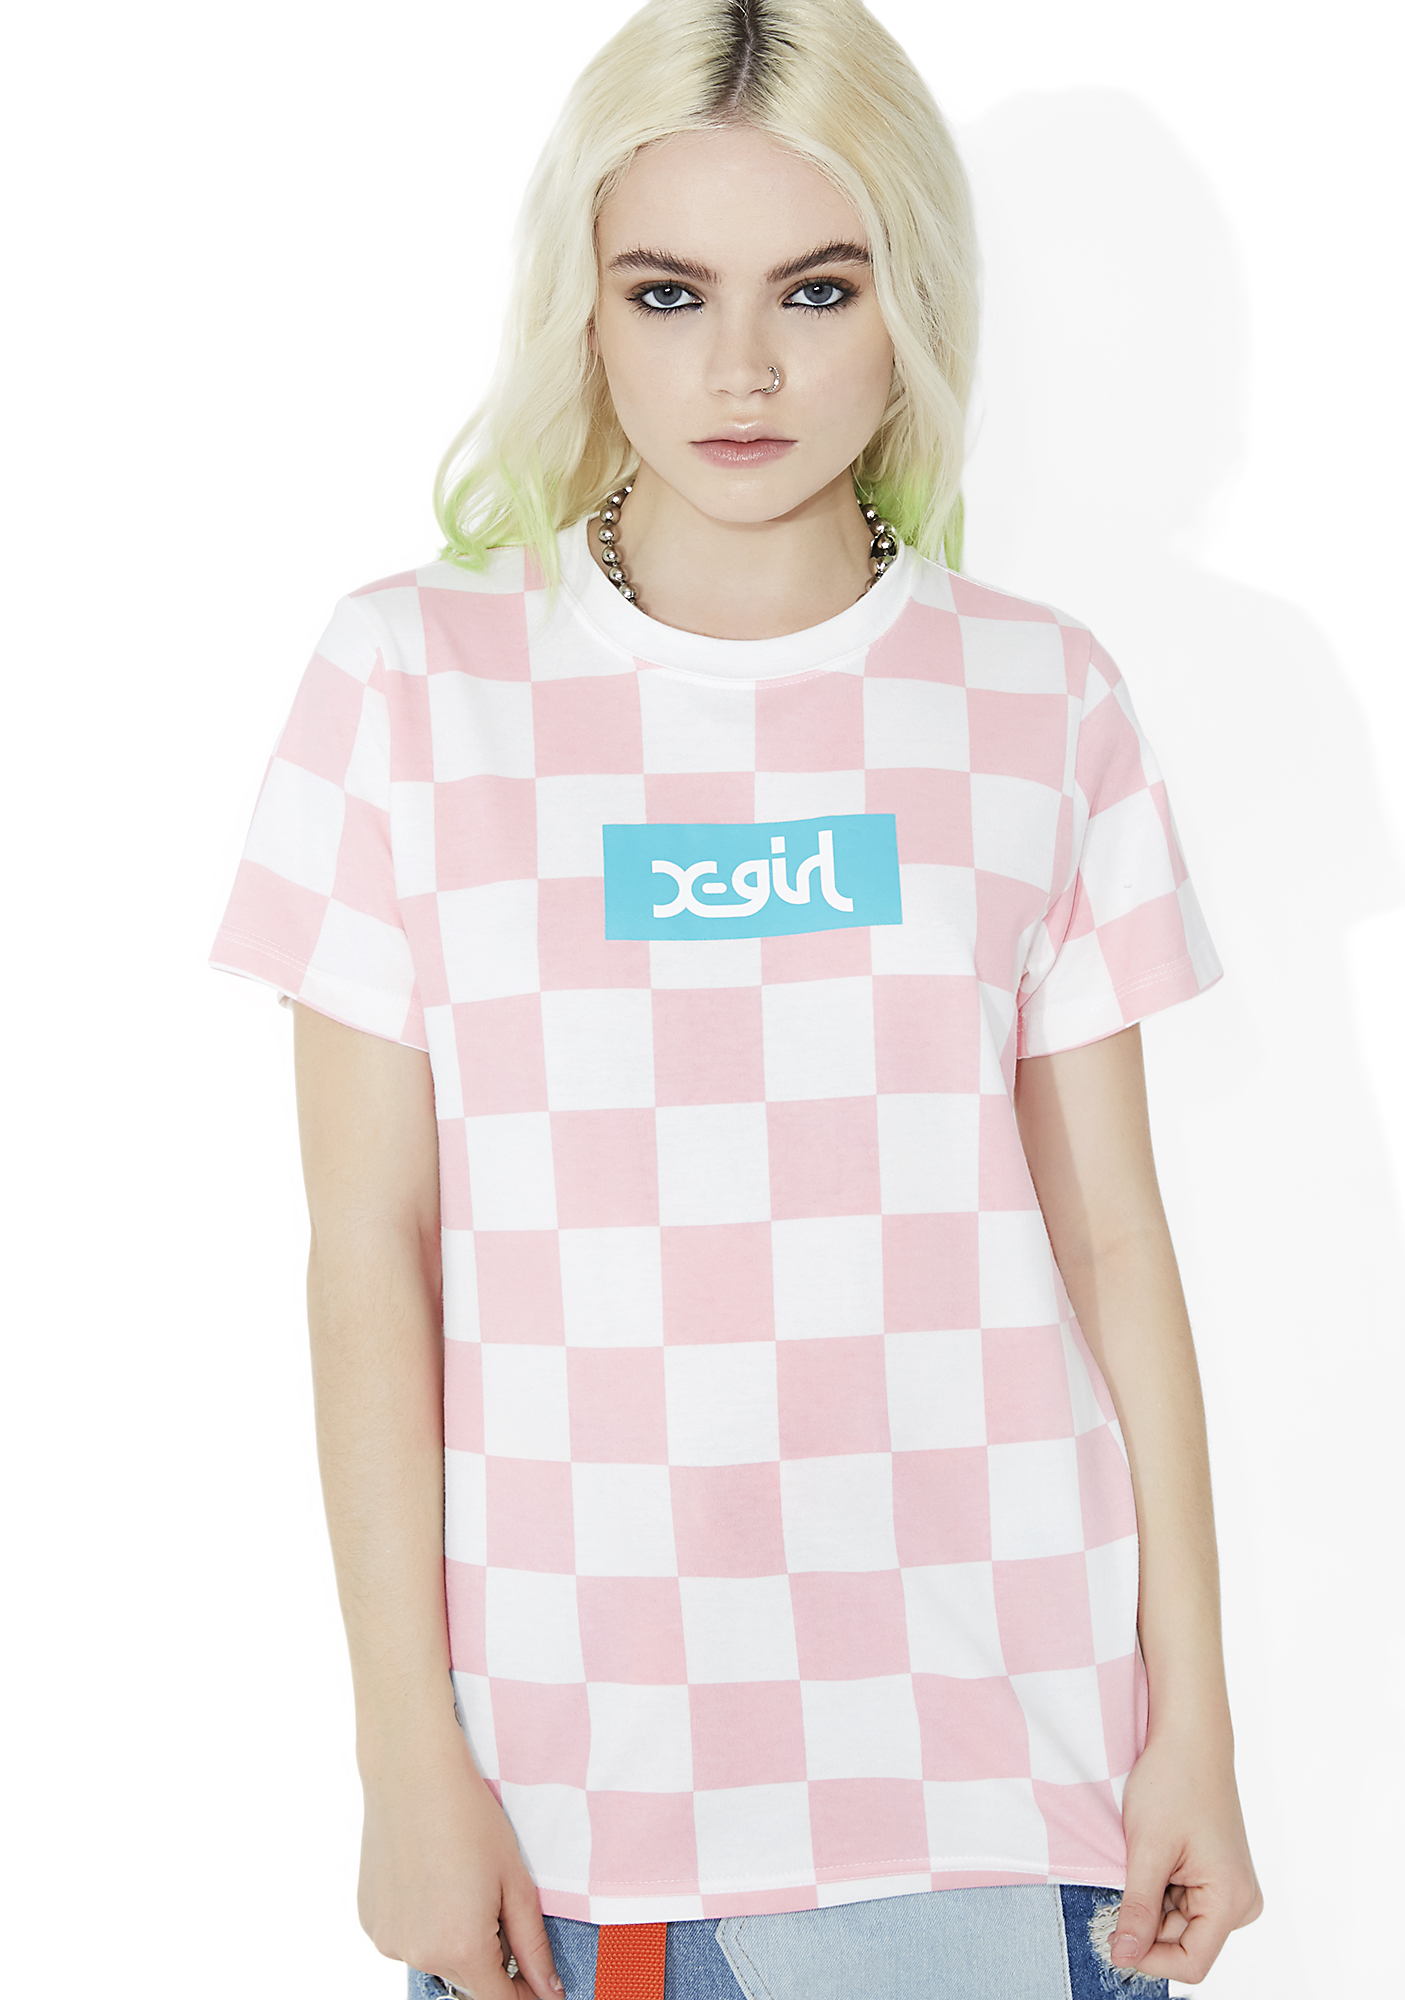 x-Girl Checkered Short Sleeve Tee